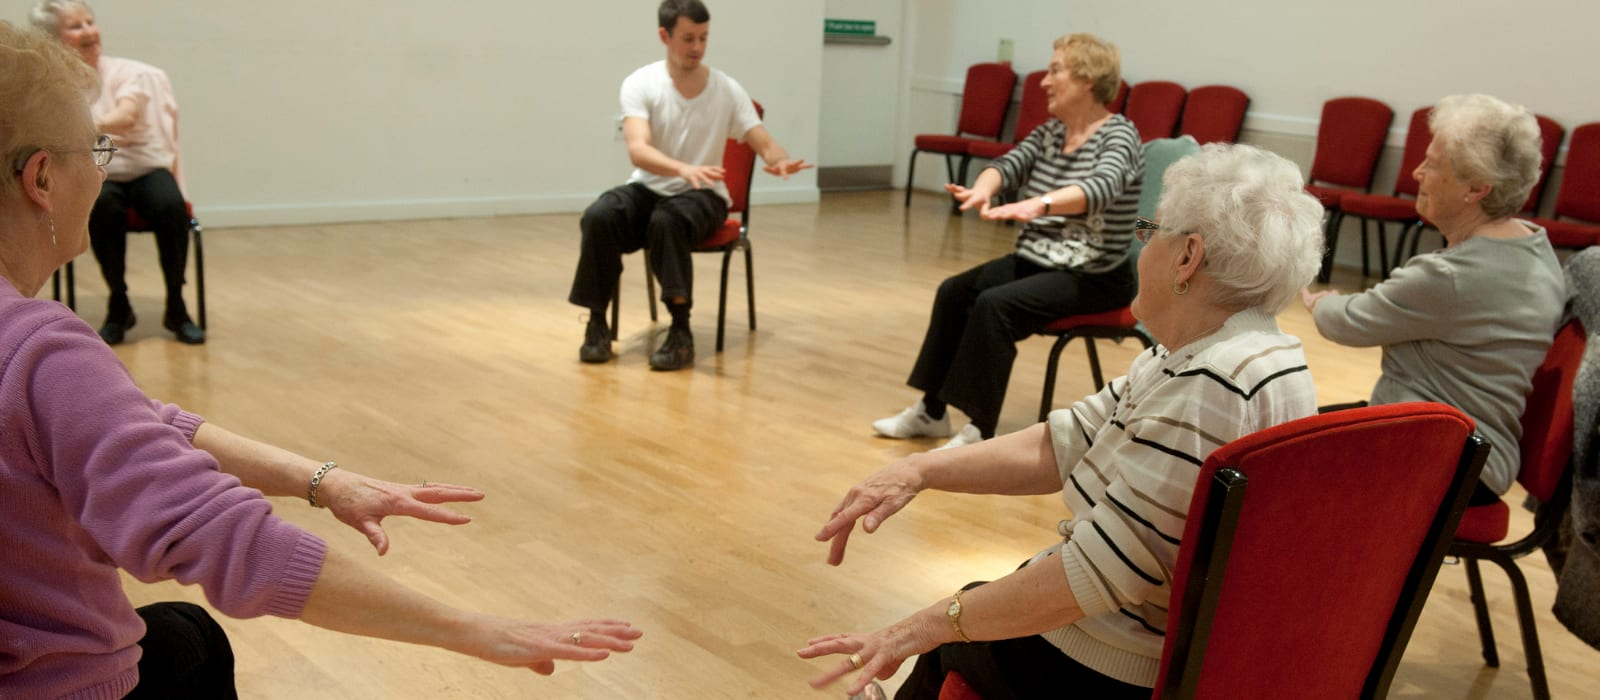 Stow Park over 60s group taking part in a seated session.